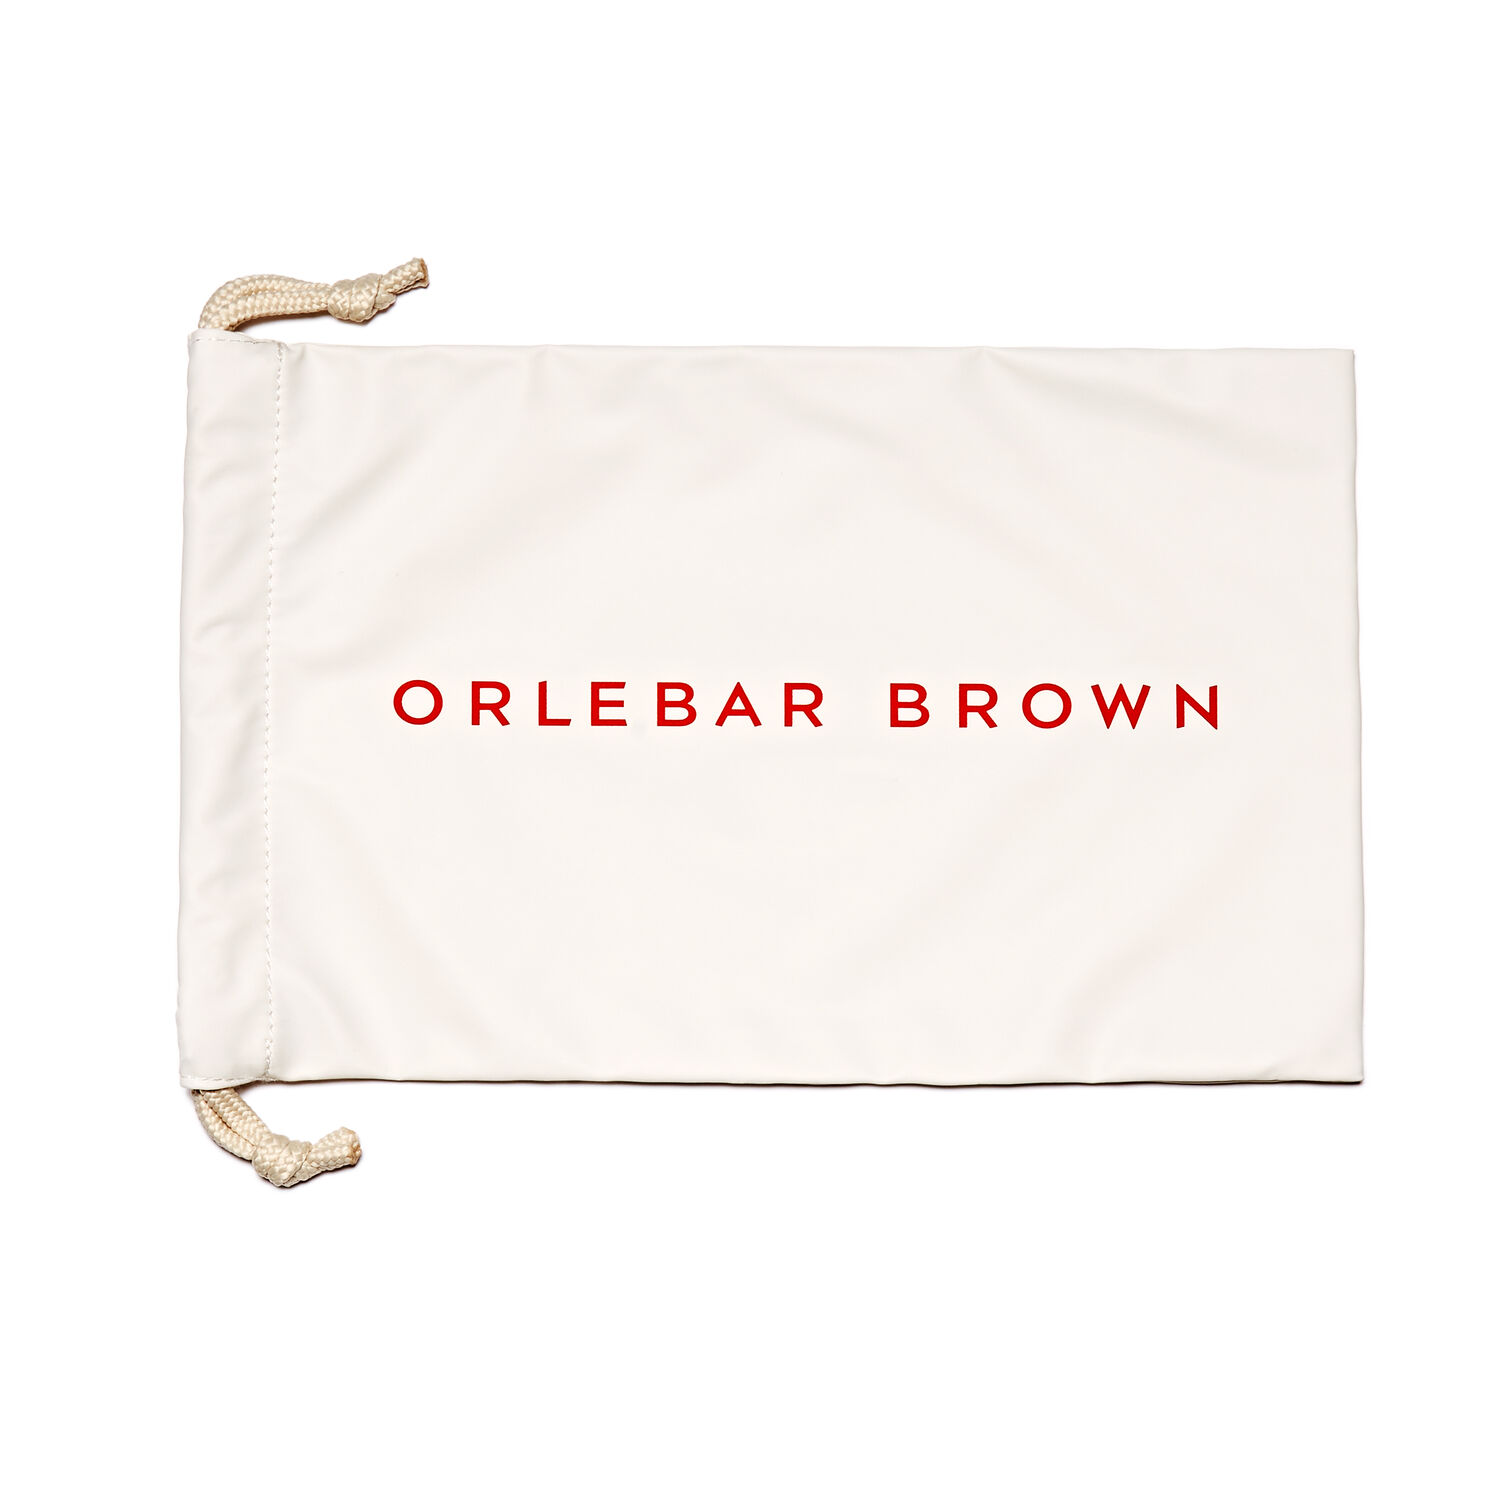 Orlebar Brown Bulldog Sport EBONY